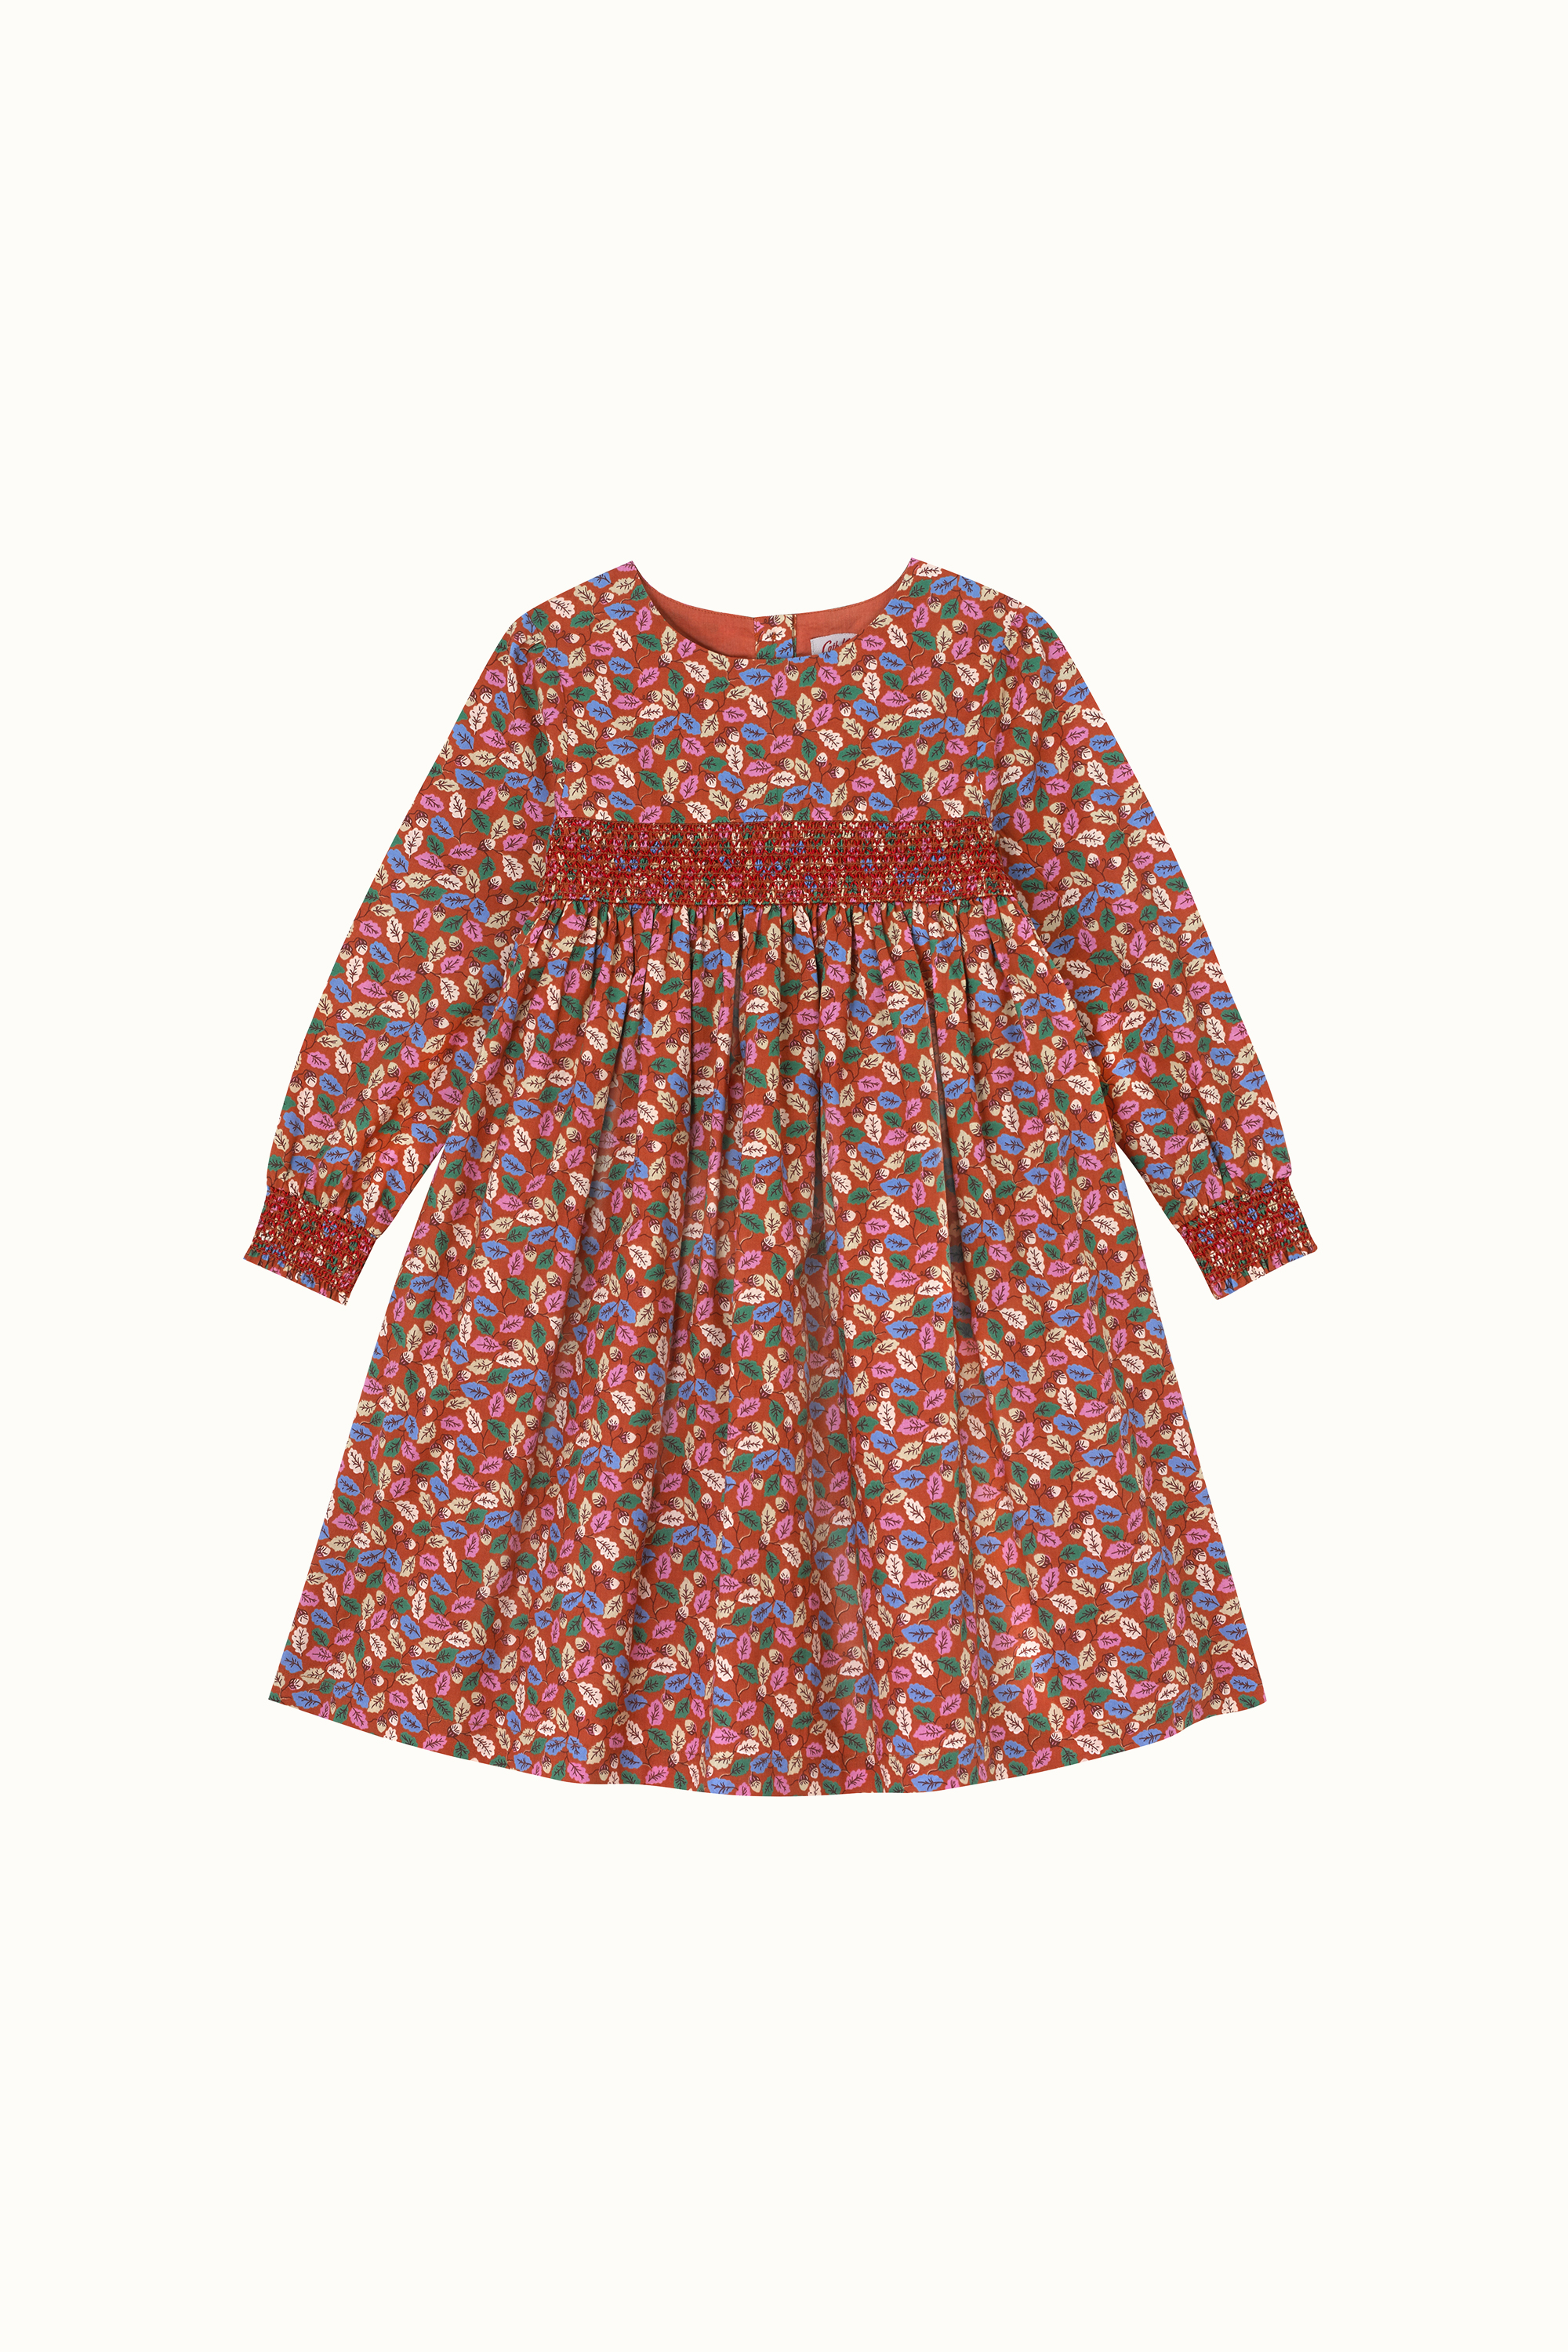 Cath Kidston Trailing Leaves Evie Shirred Dress in Red Brown, 8-9 yr